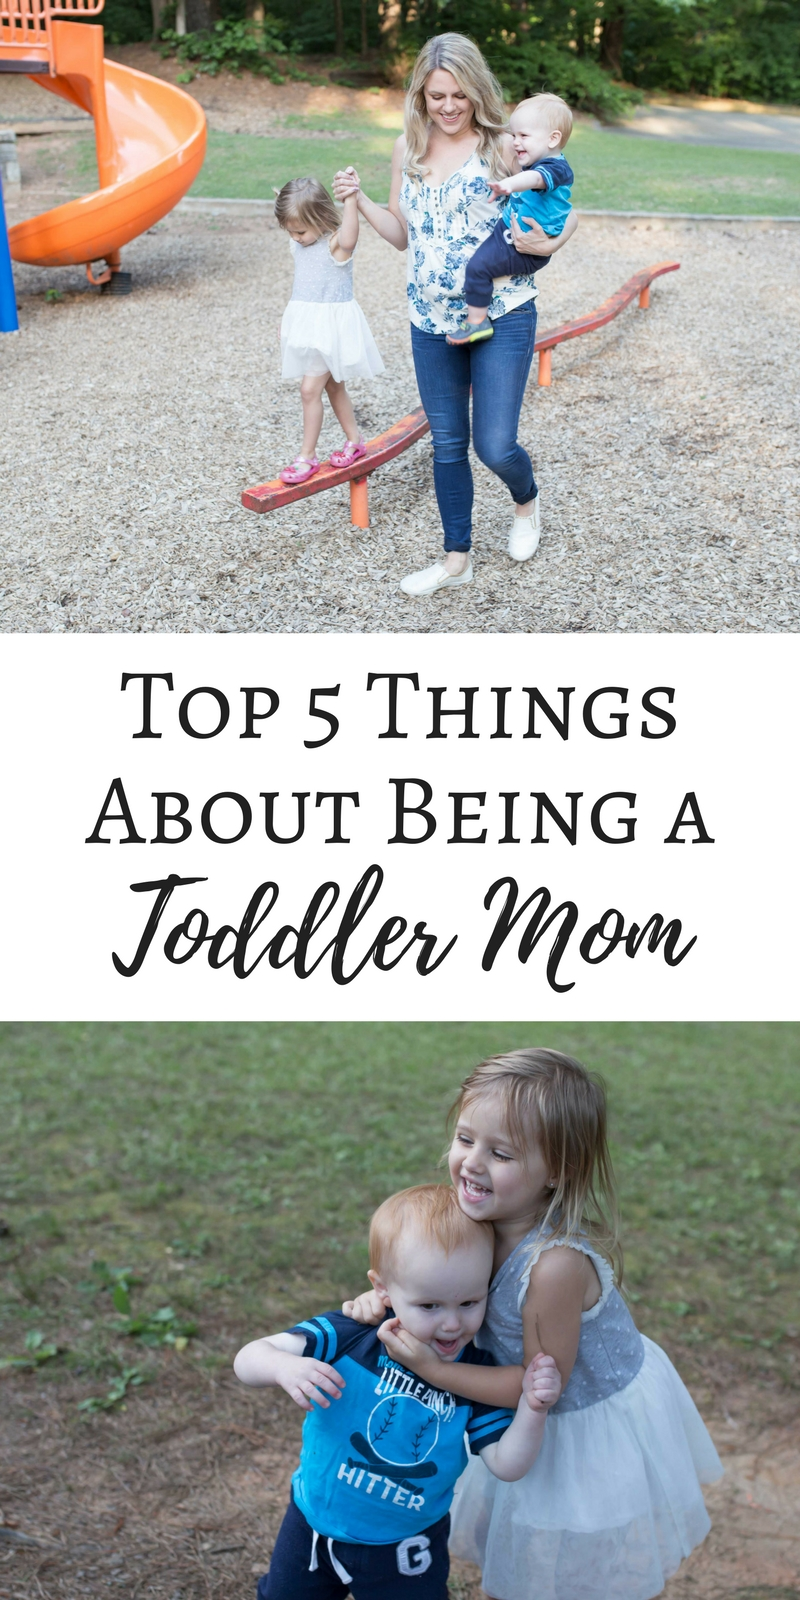 Top 5 Things About The Toddler Years by Atlanta mommy blogger Casual Claire